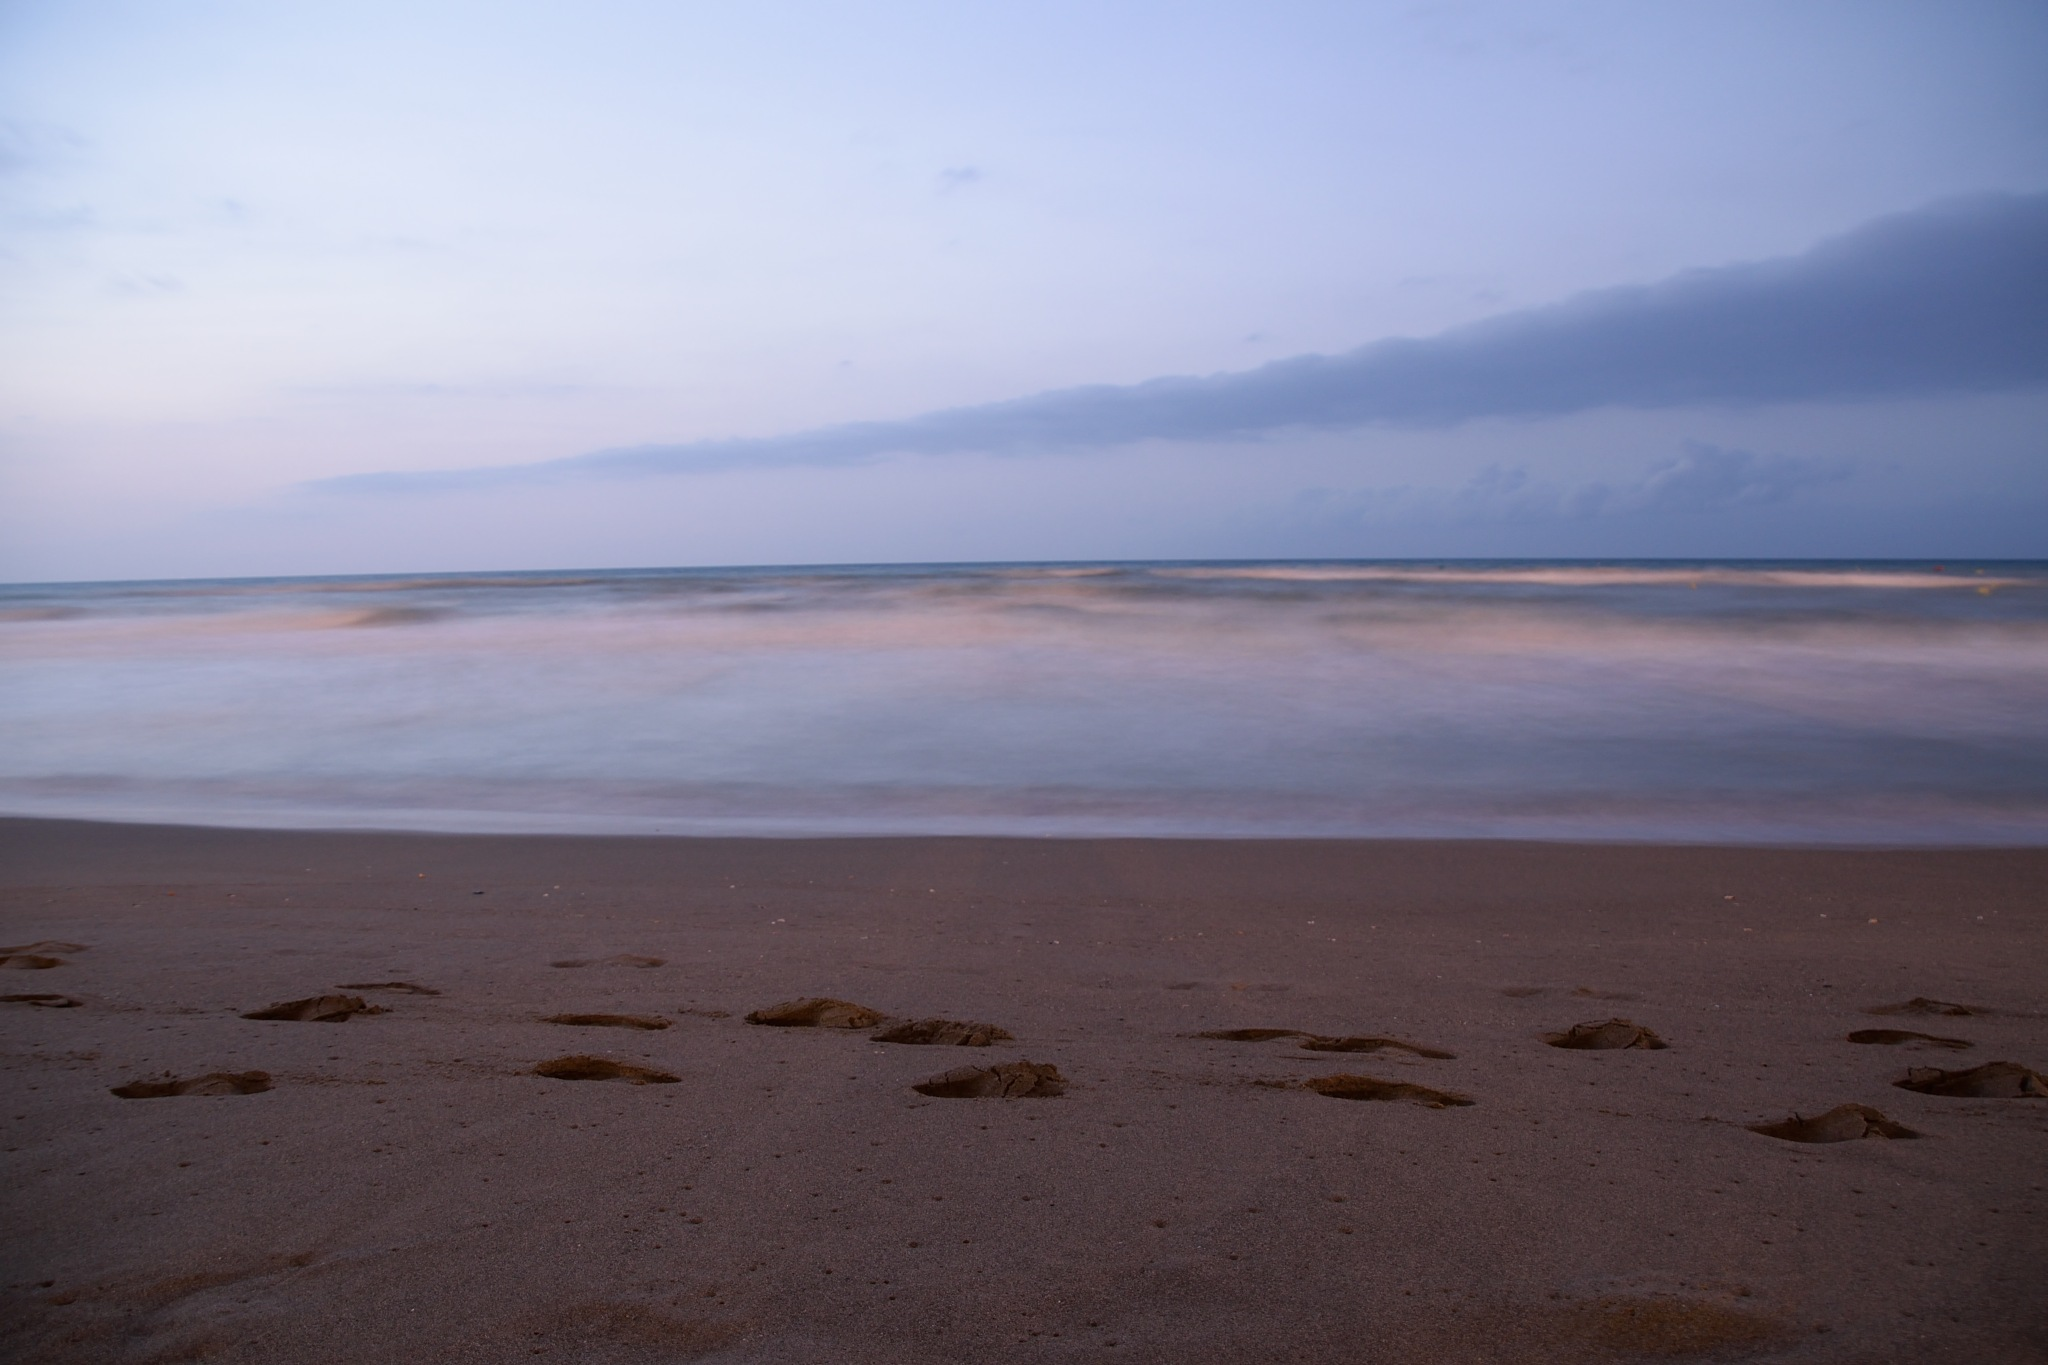 Traces in the Sand by chrisbitschnau